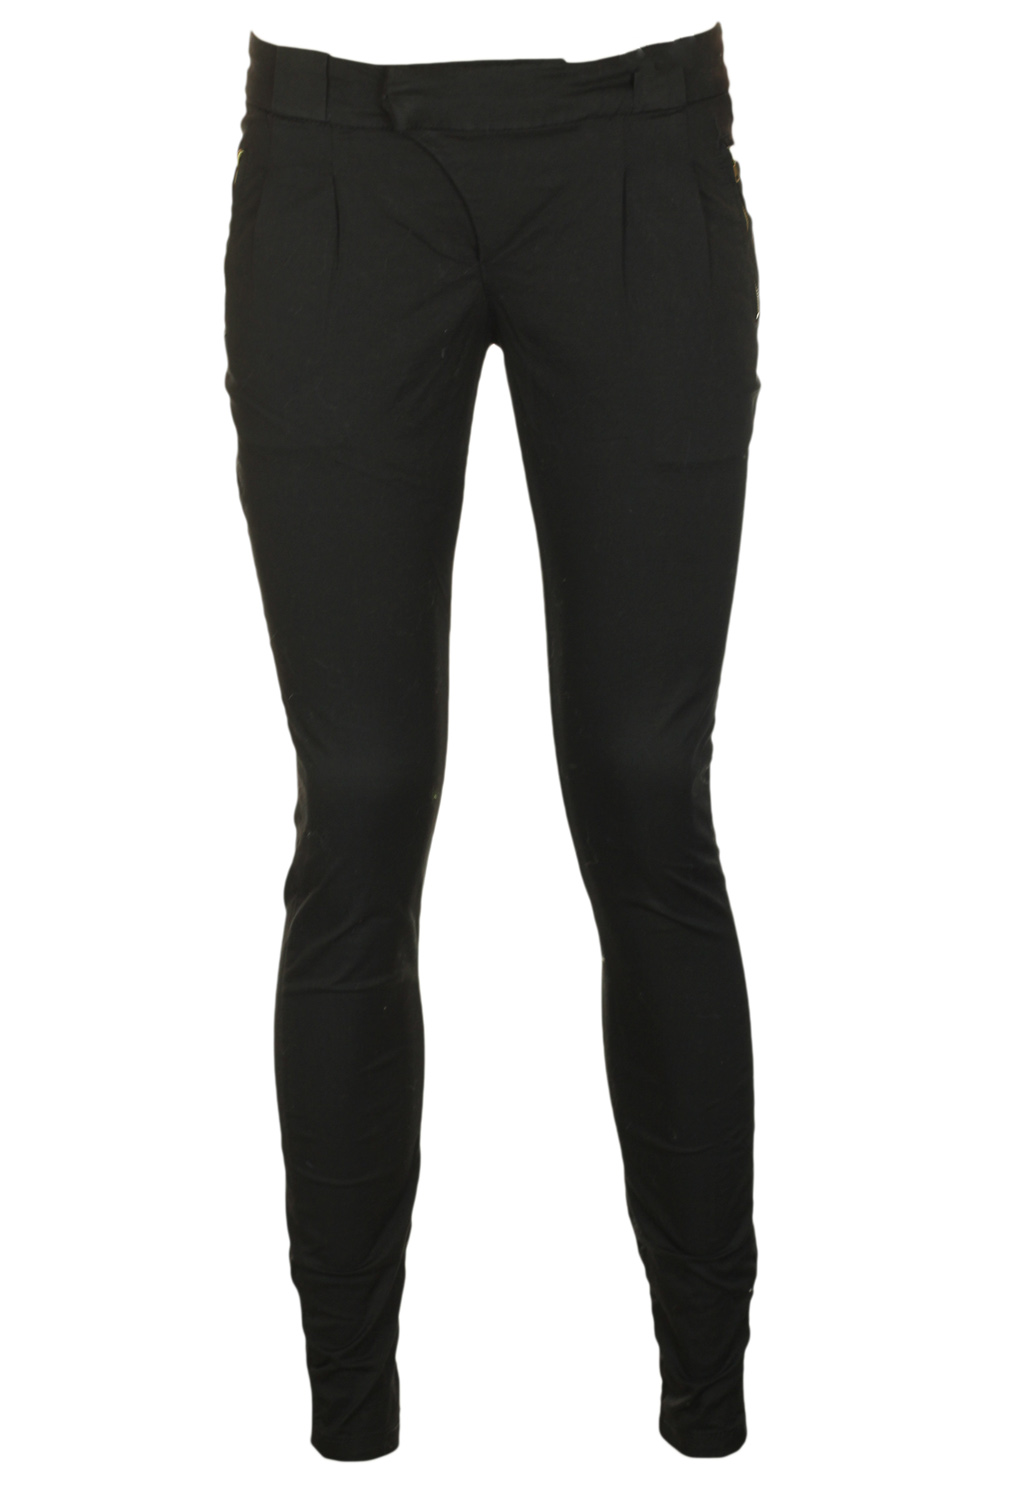 Pantaloni Tally Weijl Stripes Black, preturi, ieftine